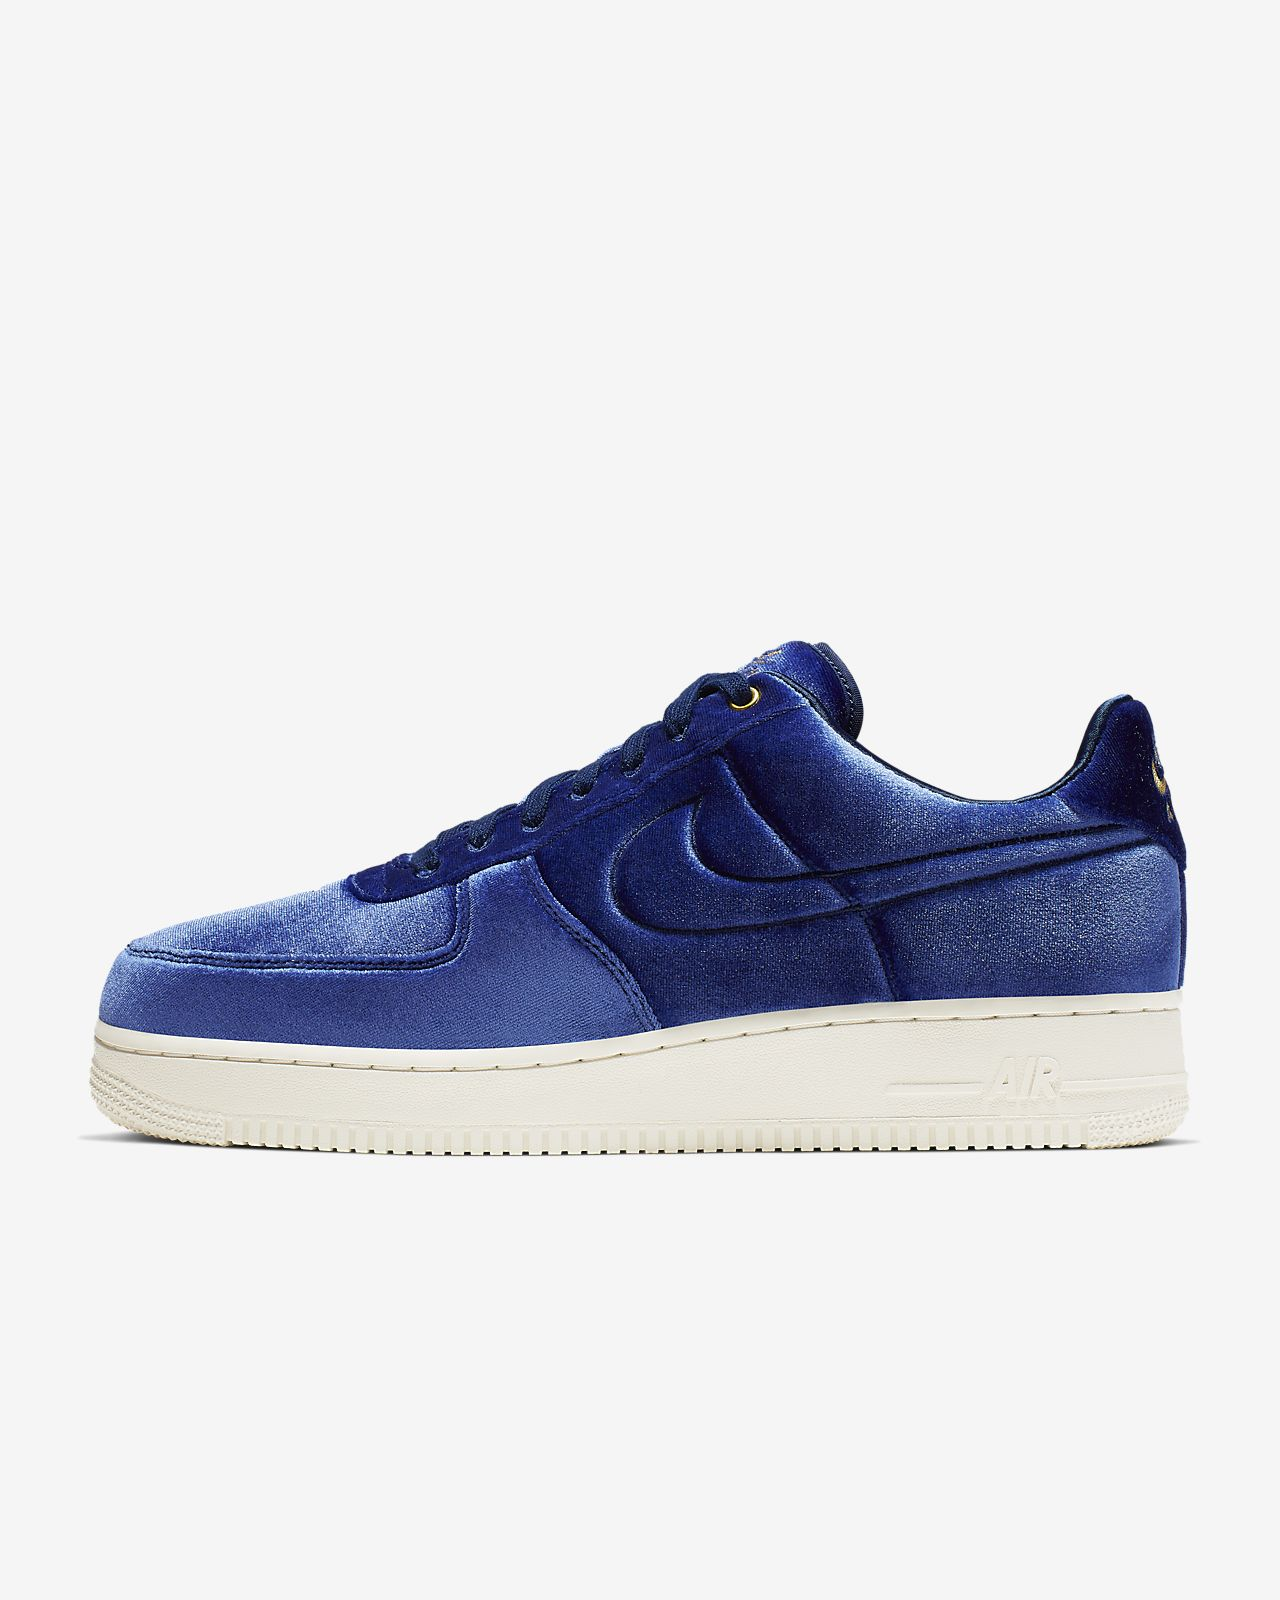 Nike Air Force 1 '07 Premium 3 férficipő